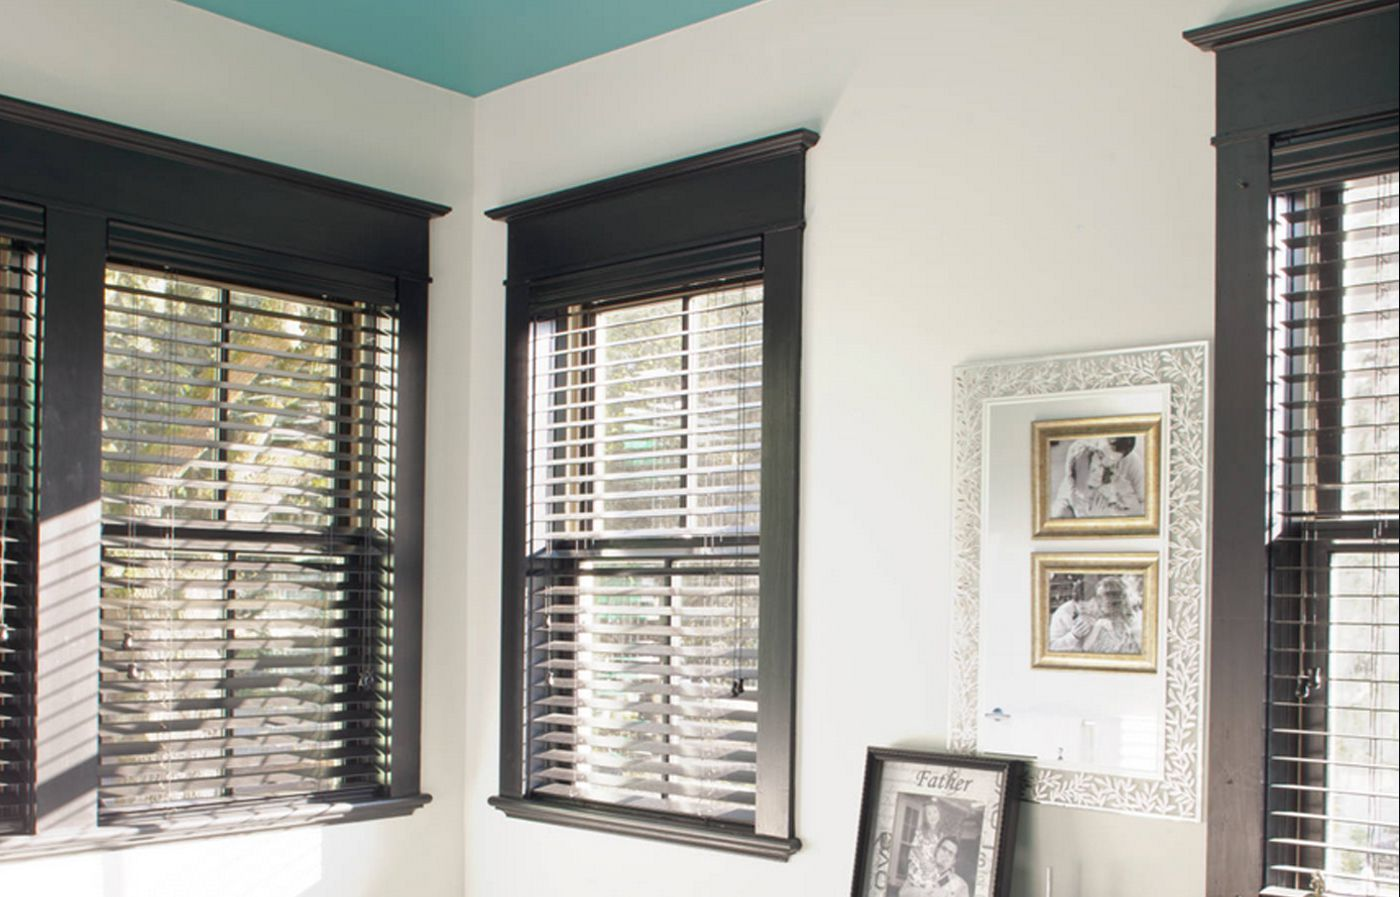 11 Brilliant Ideas For Painting Window Frames This Old House